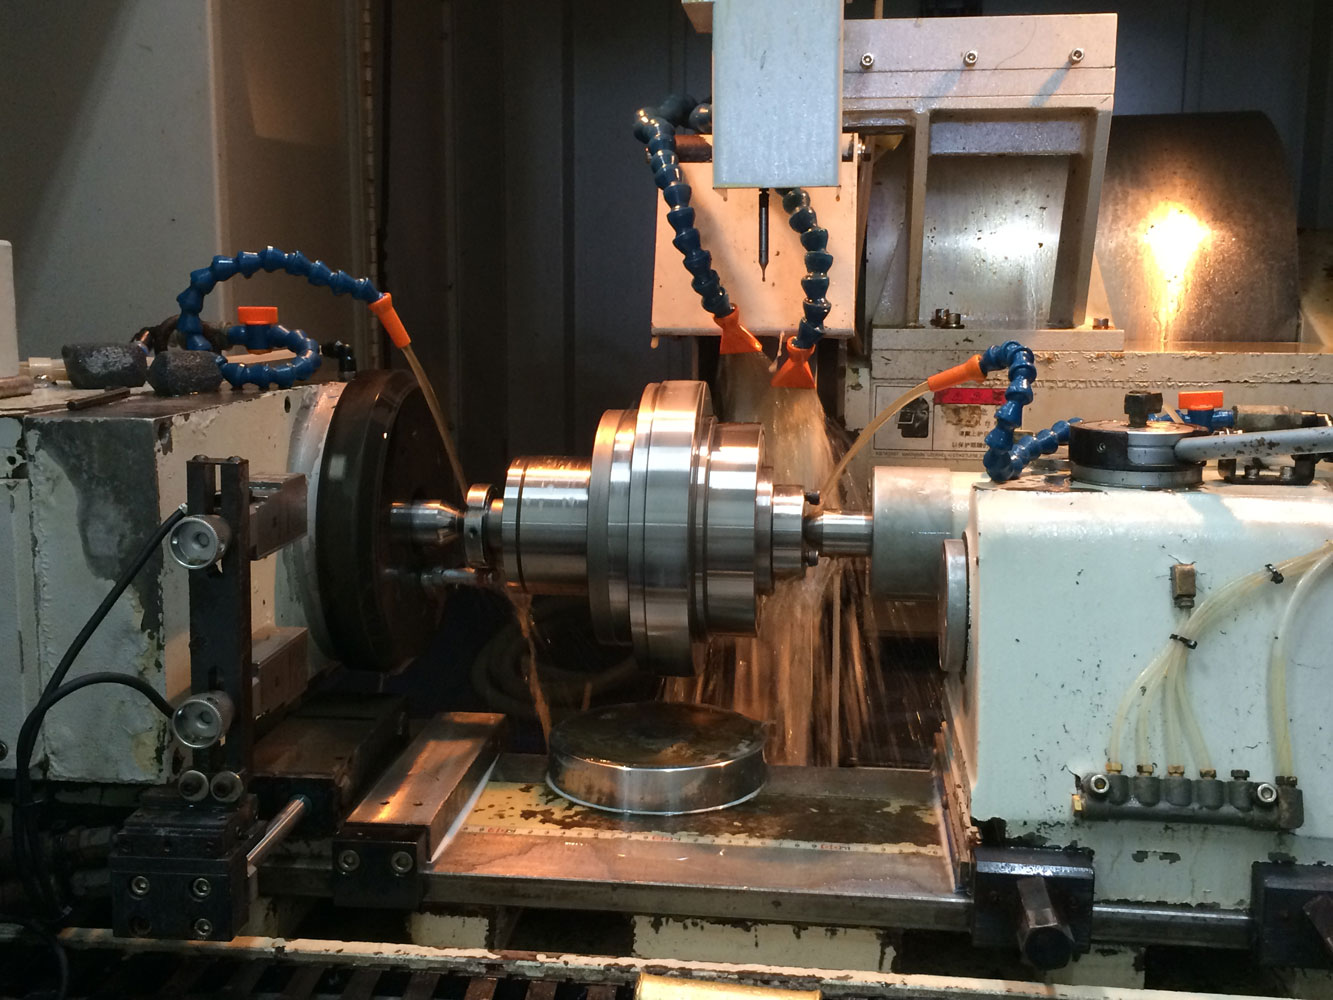 Ju Feng provides CNC grinding service for customers worldwide.